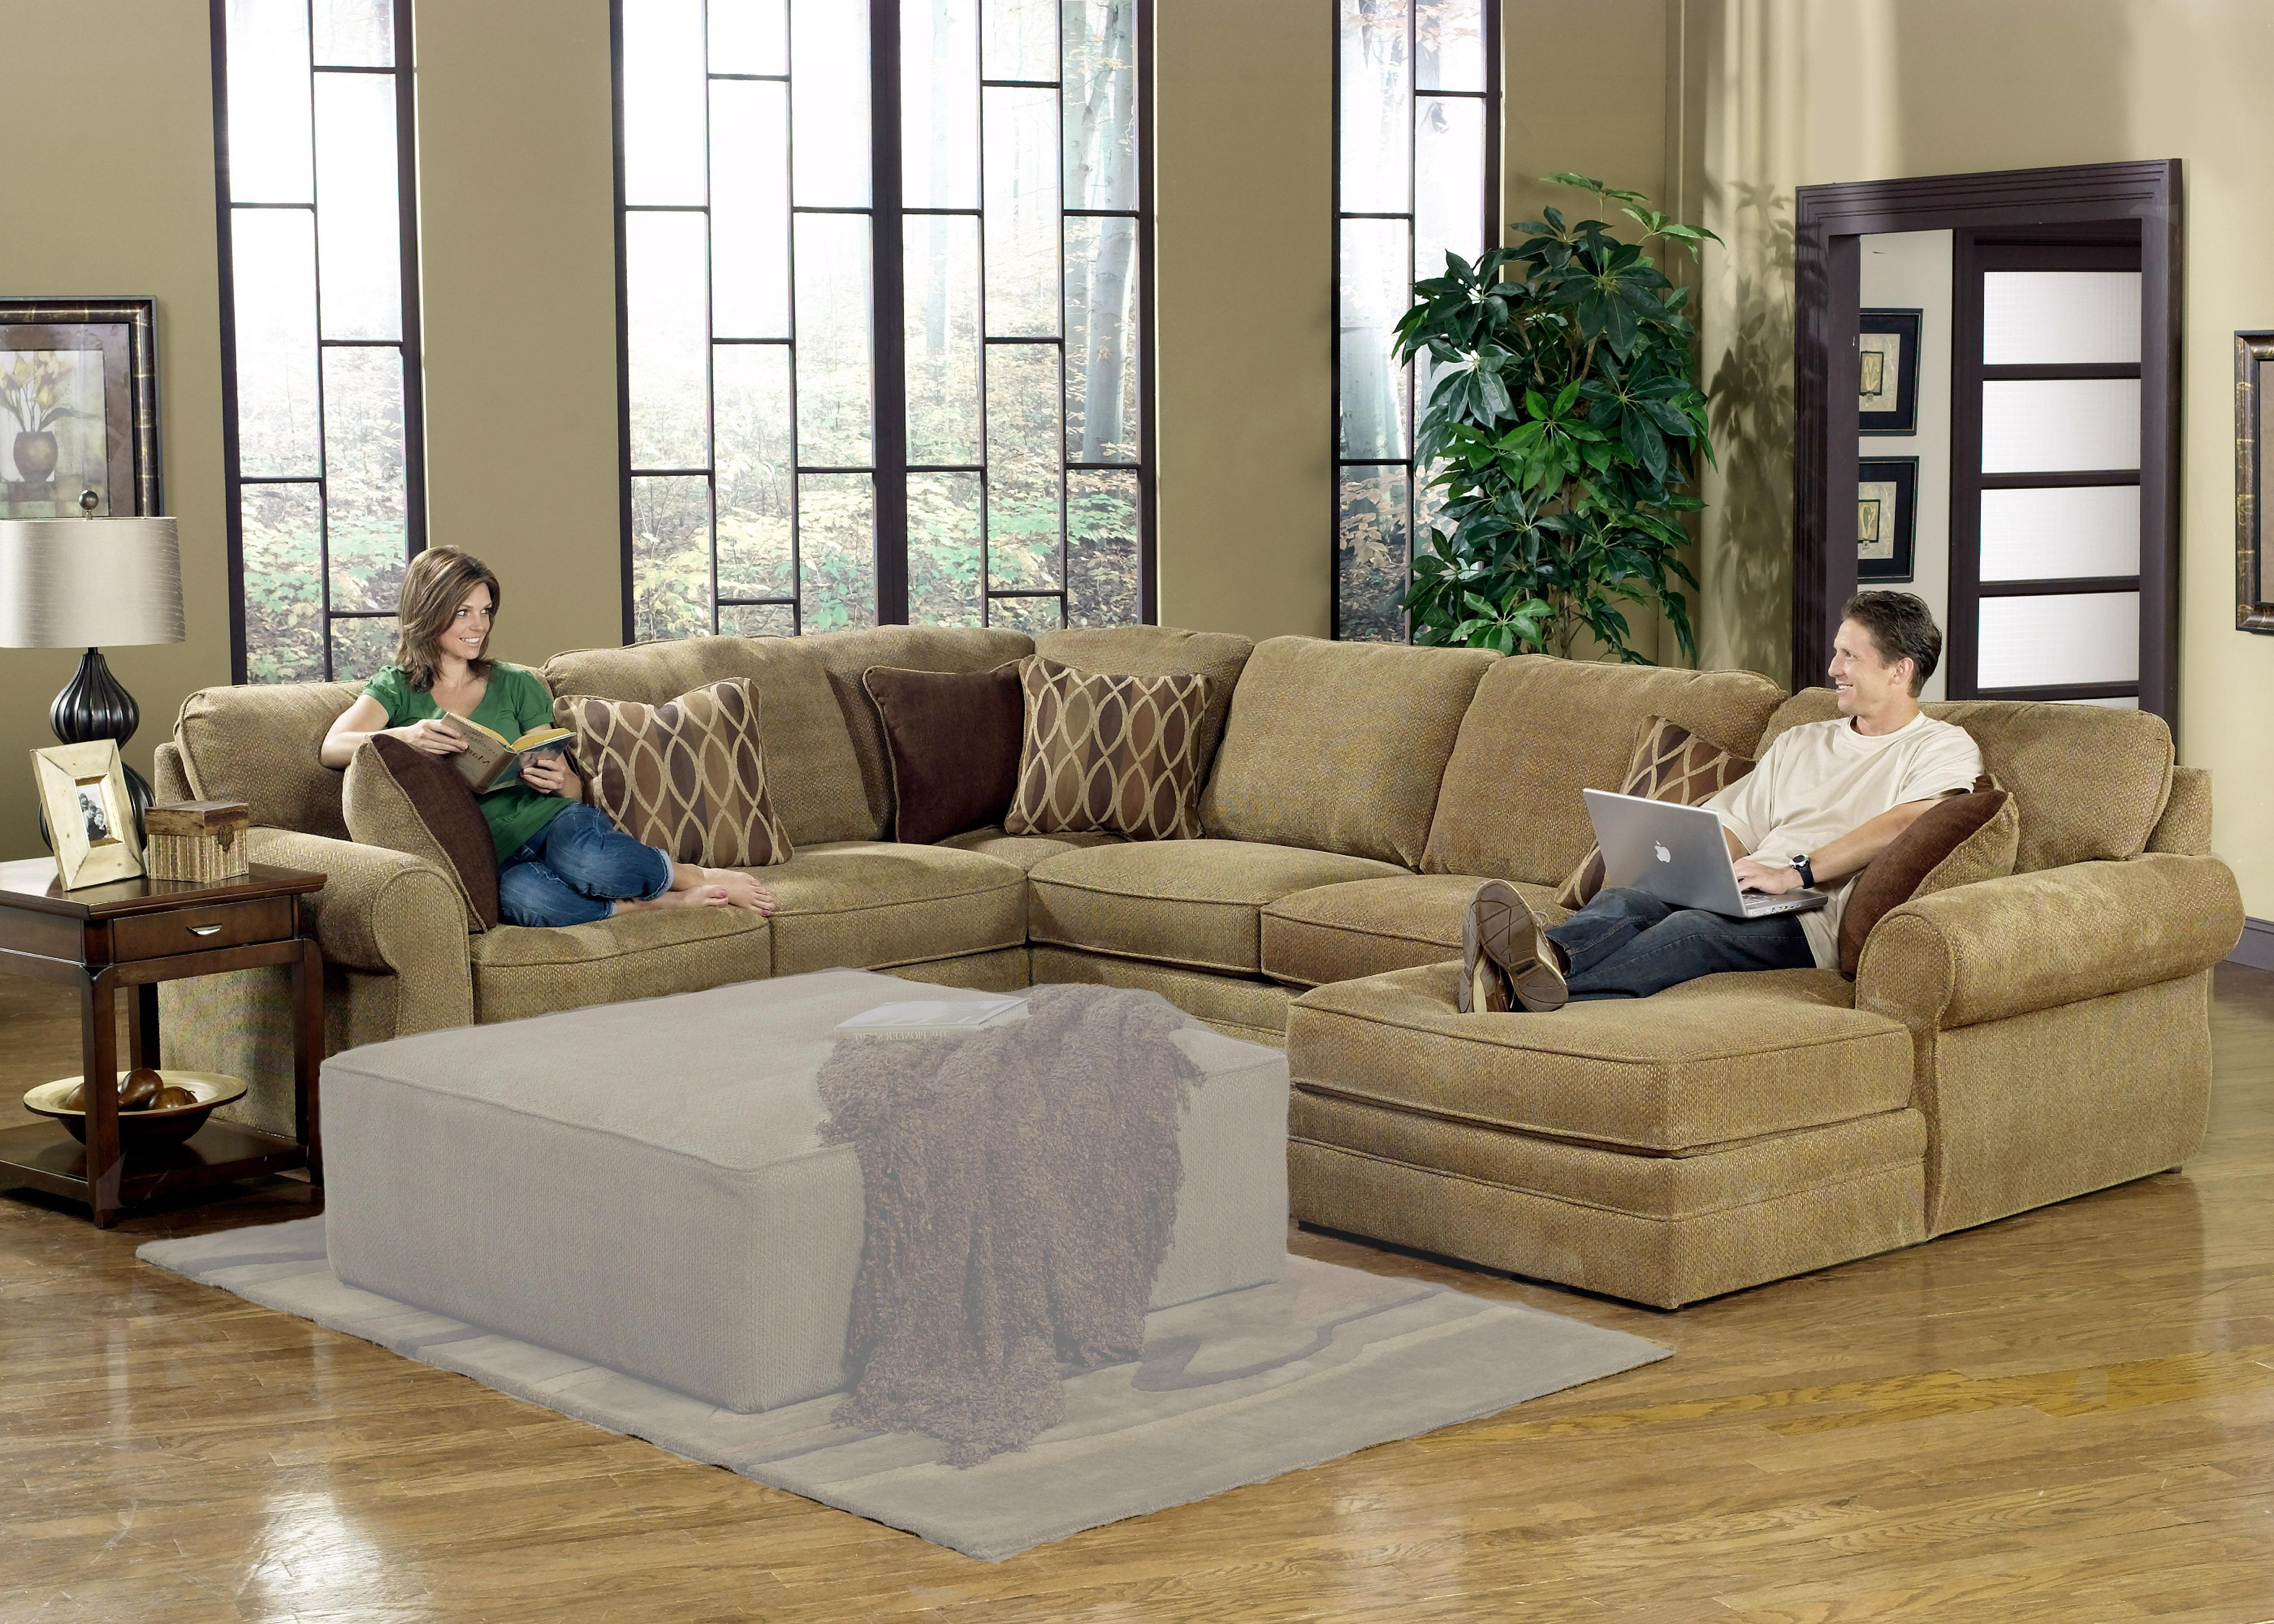 Popular Sectional Sofa Design: Adorable Large U Shaped Sectional Sofa U With Regard To Large U Shaped Sectionals (View 13 of 20)